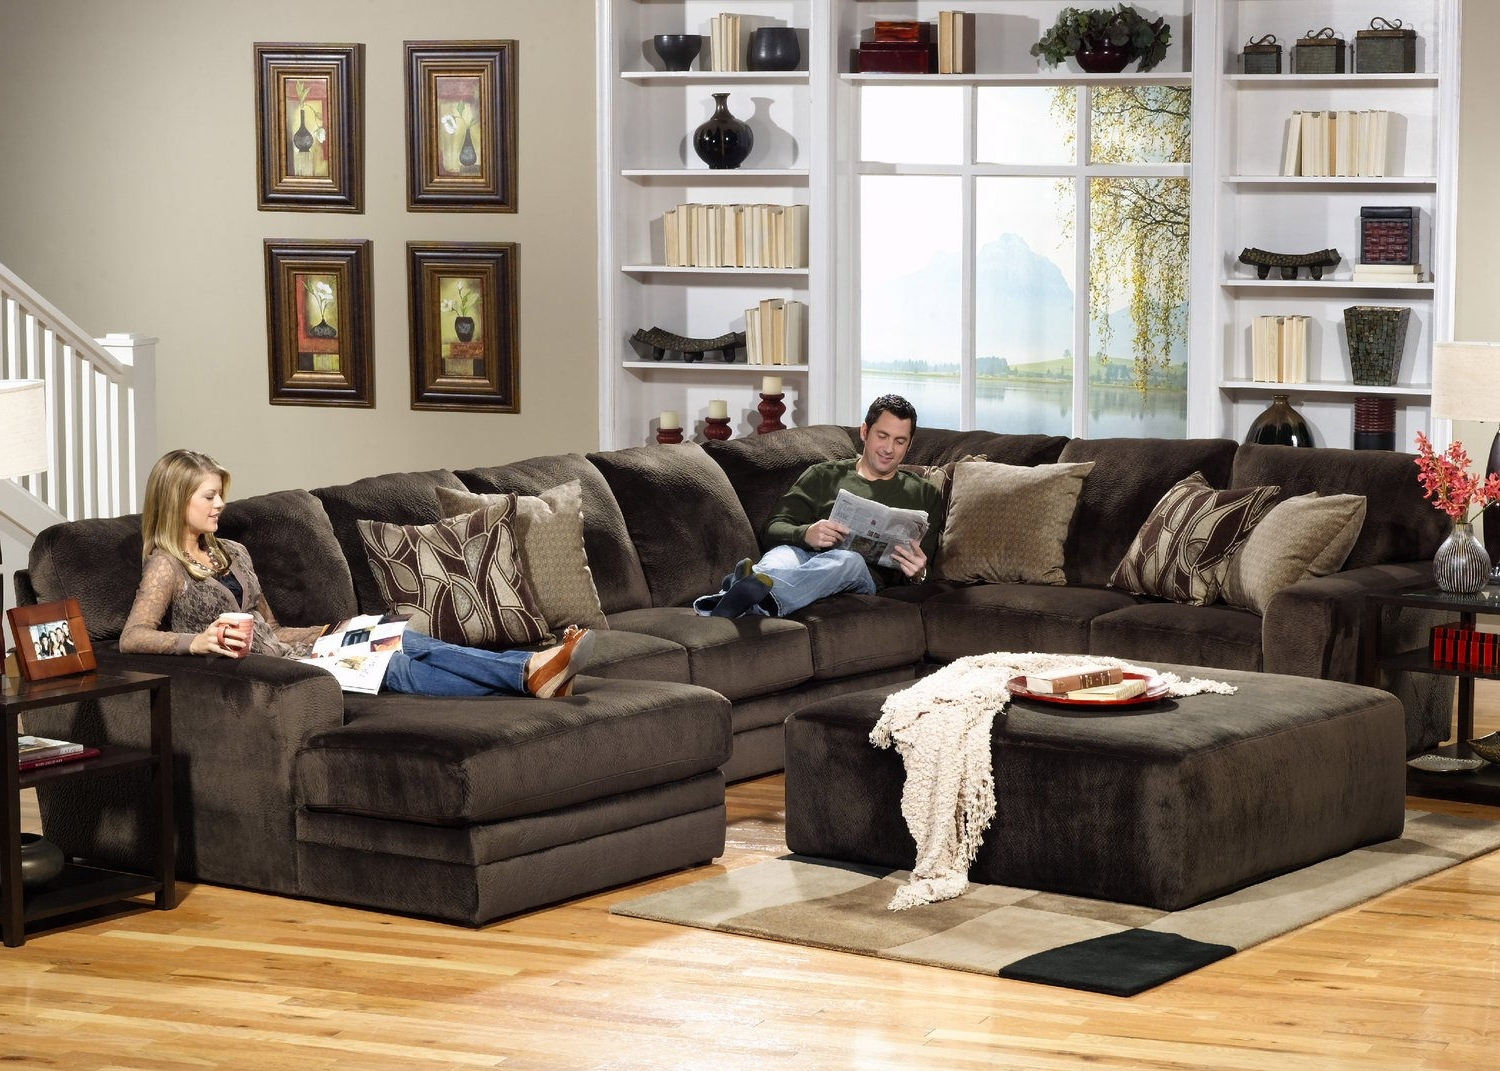 Rainier 3 Piece Sectional (View 5 of 20)